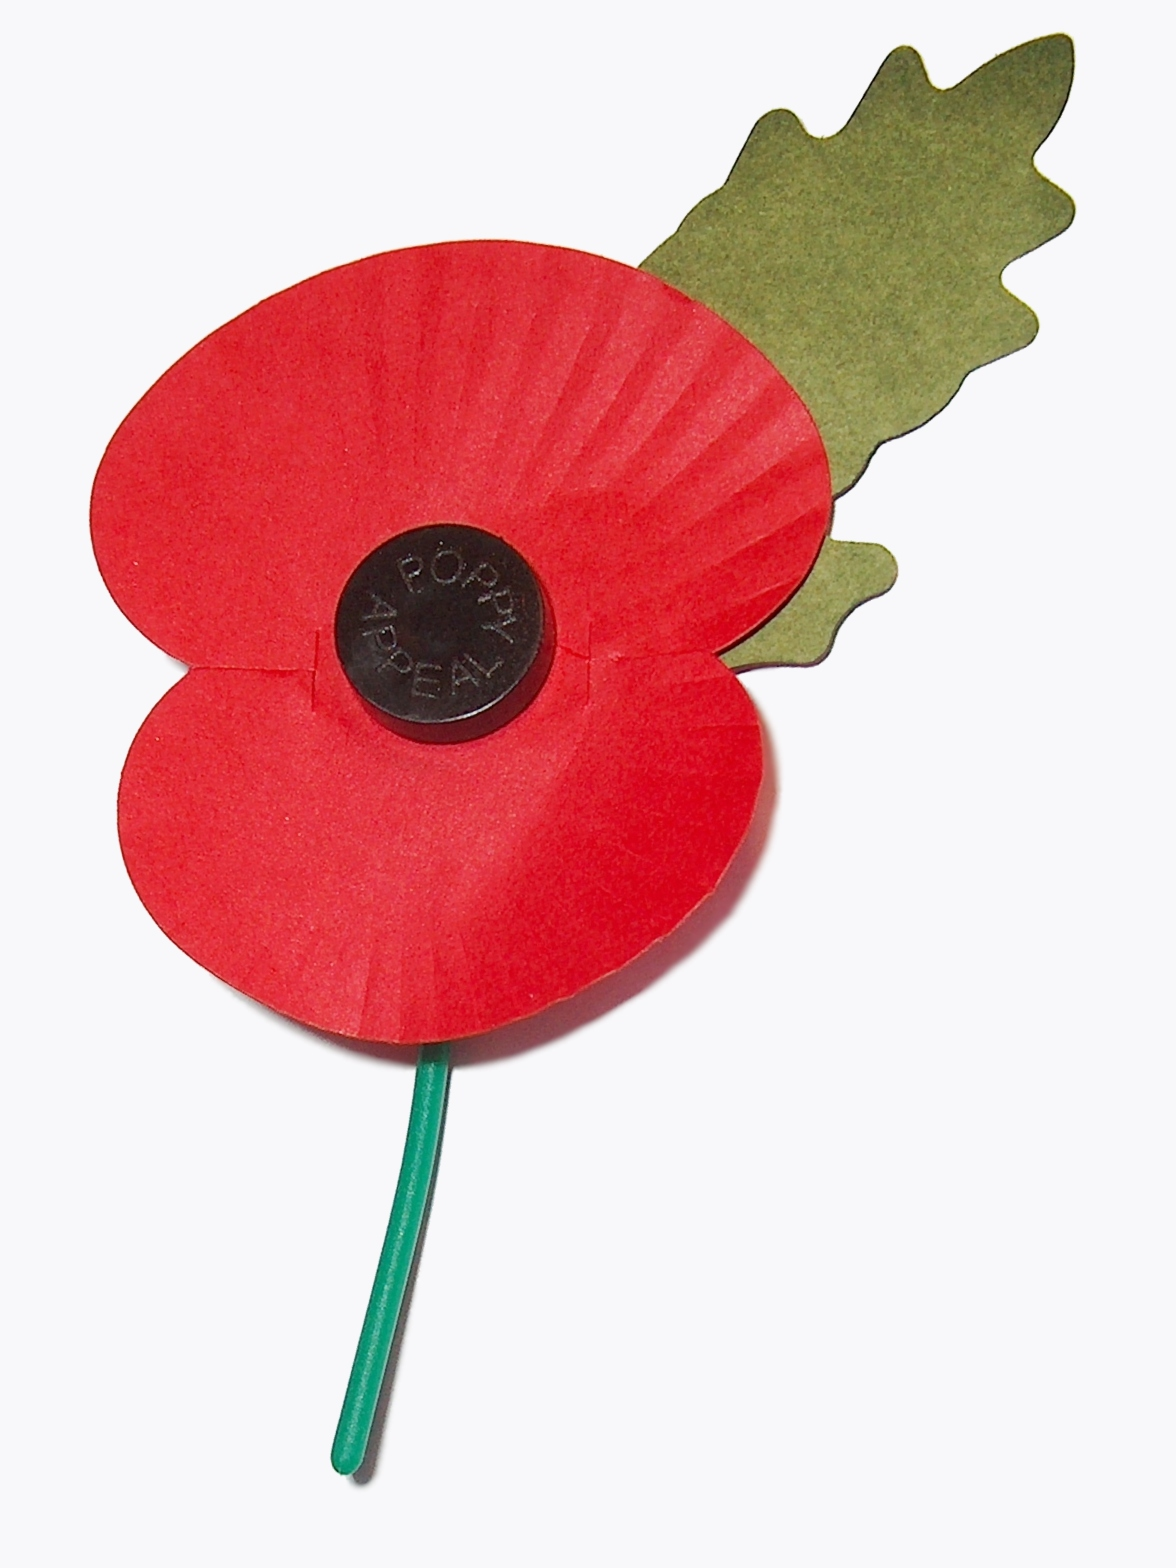 http://upload.wikimedia.org/wikipedia/commons/a/a3/Royal_British_Legion%27s_Paper_Poppy_-_white_background.jpg